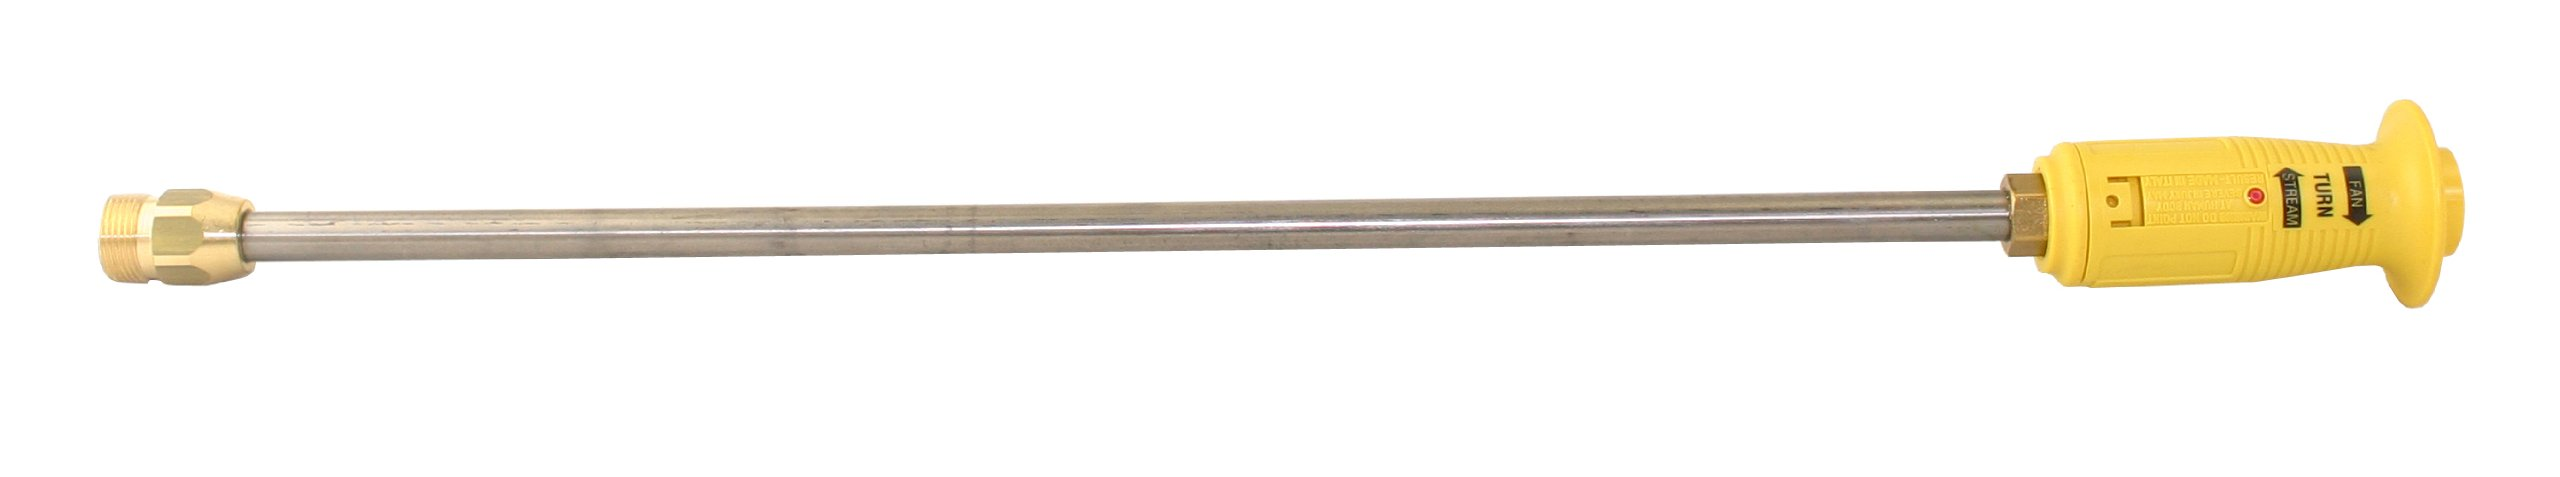 Briggs & Stratton 205015CGS Wand for Pressure Washers